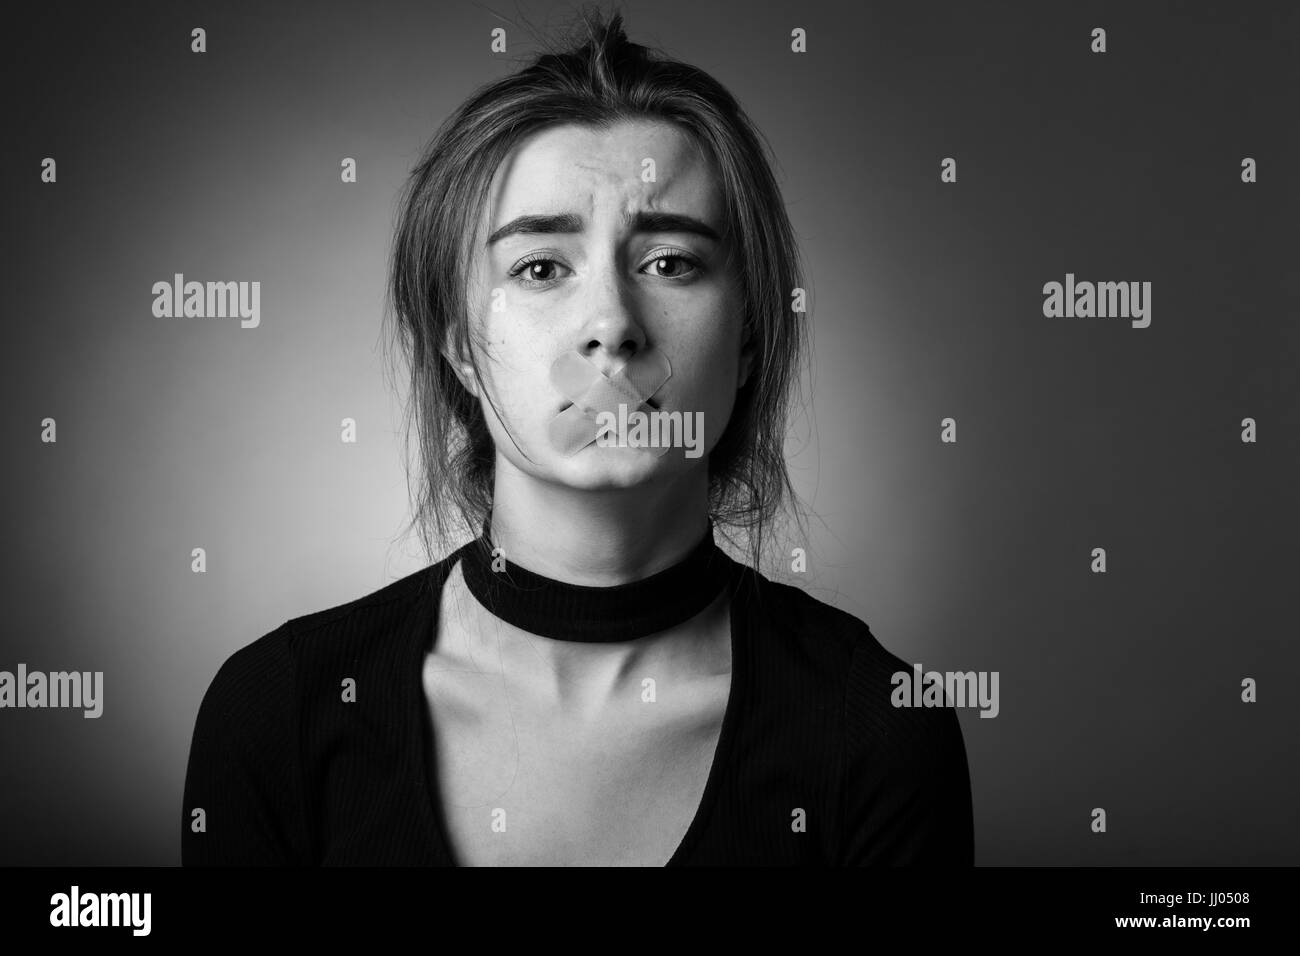 sad girl with plaster on her mouth looking at camera at gray background, monochrome Stock Photo